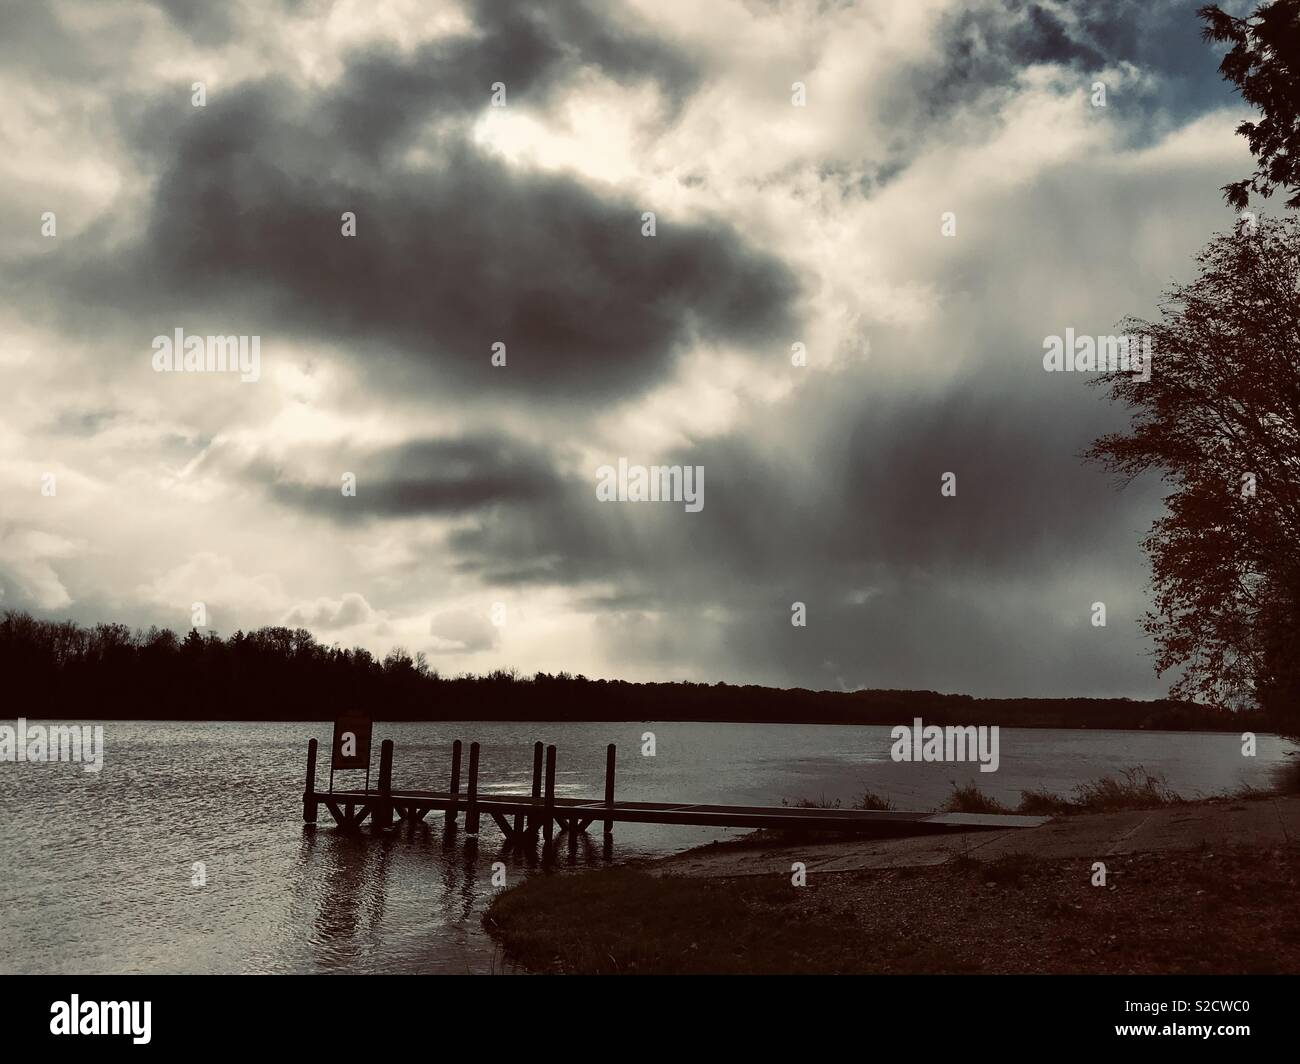 Sun Rays and Shapes in the Clouds - Stock Image